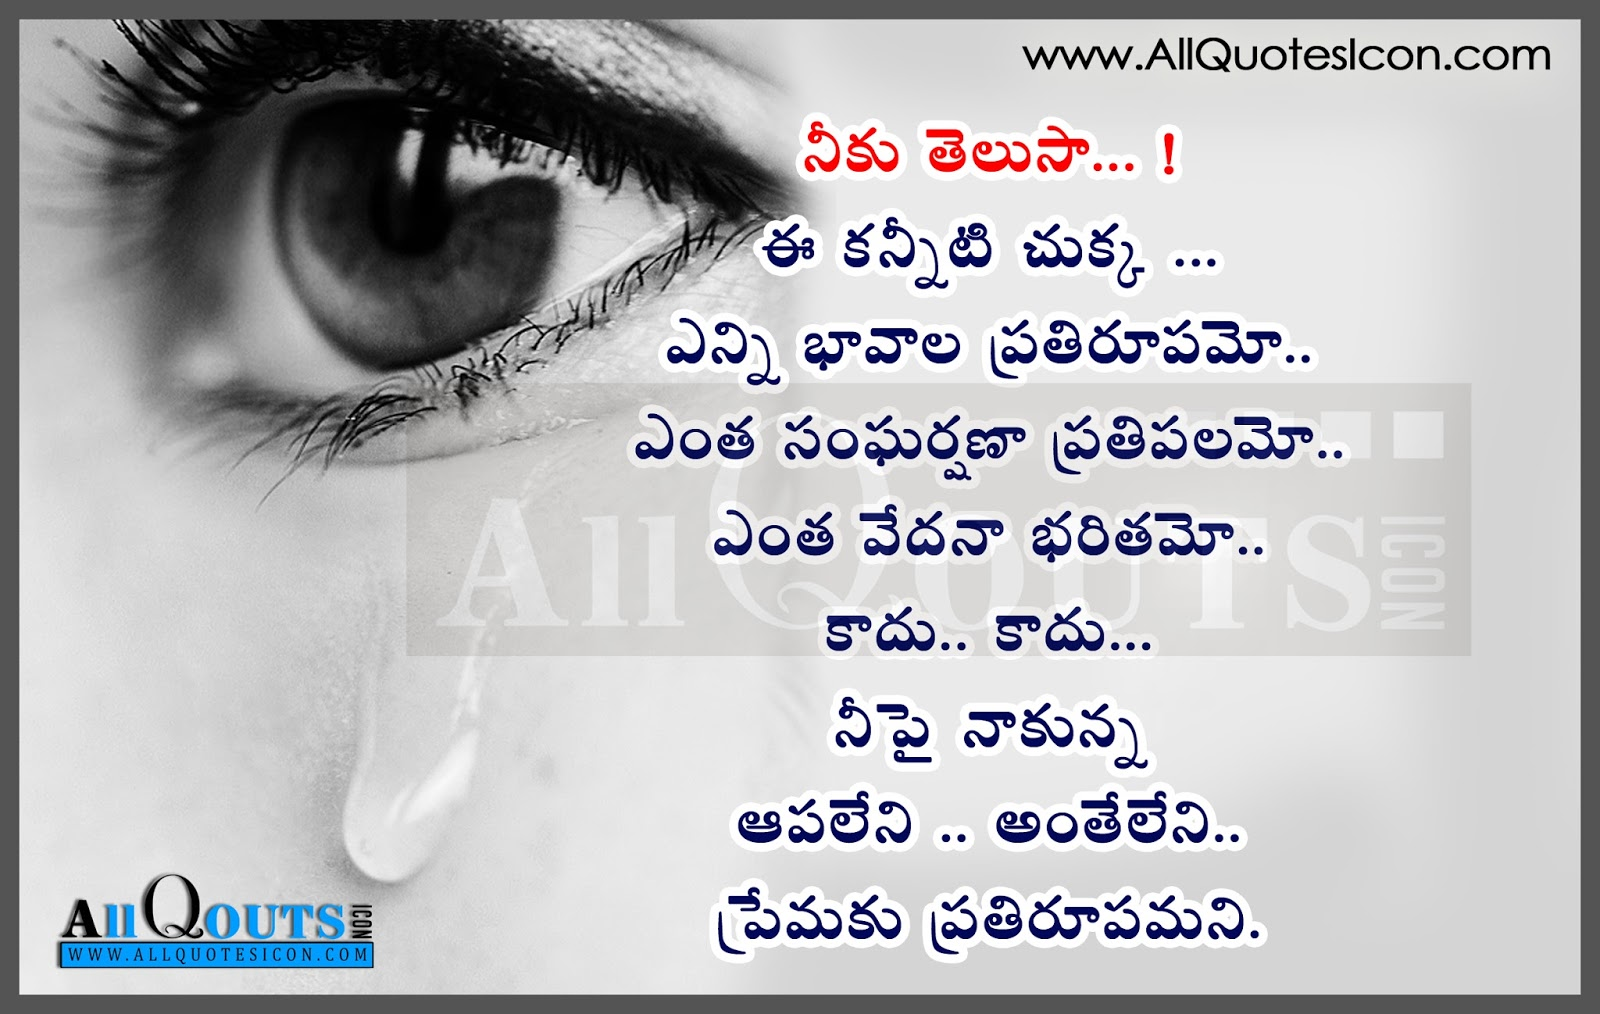 I Love Quotes In Telugu : Love Quotes and Thoughts in Telugu www.AllQuotesIcon.com Telugu ...